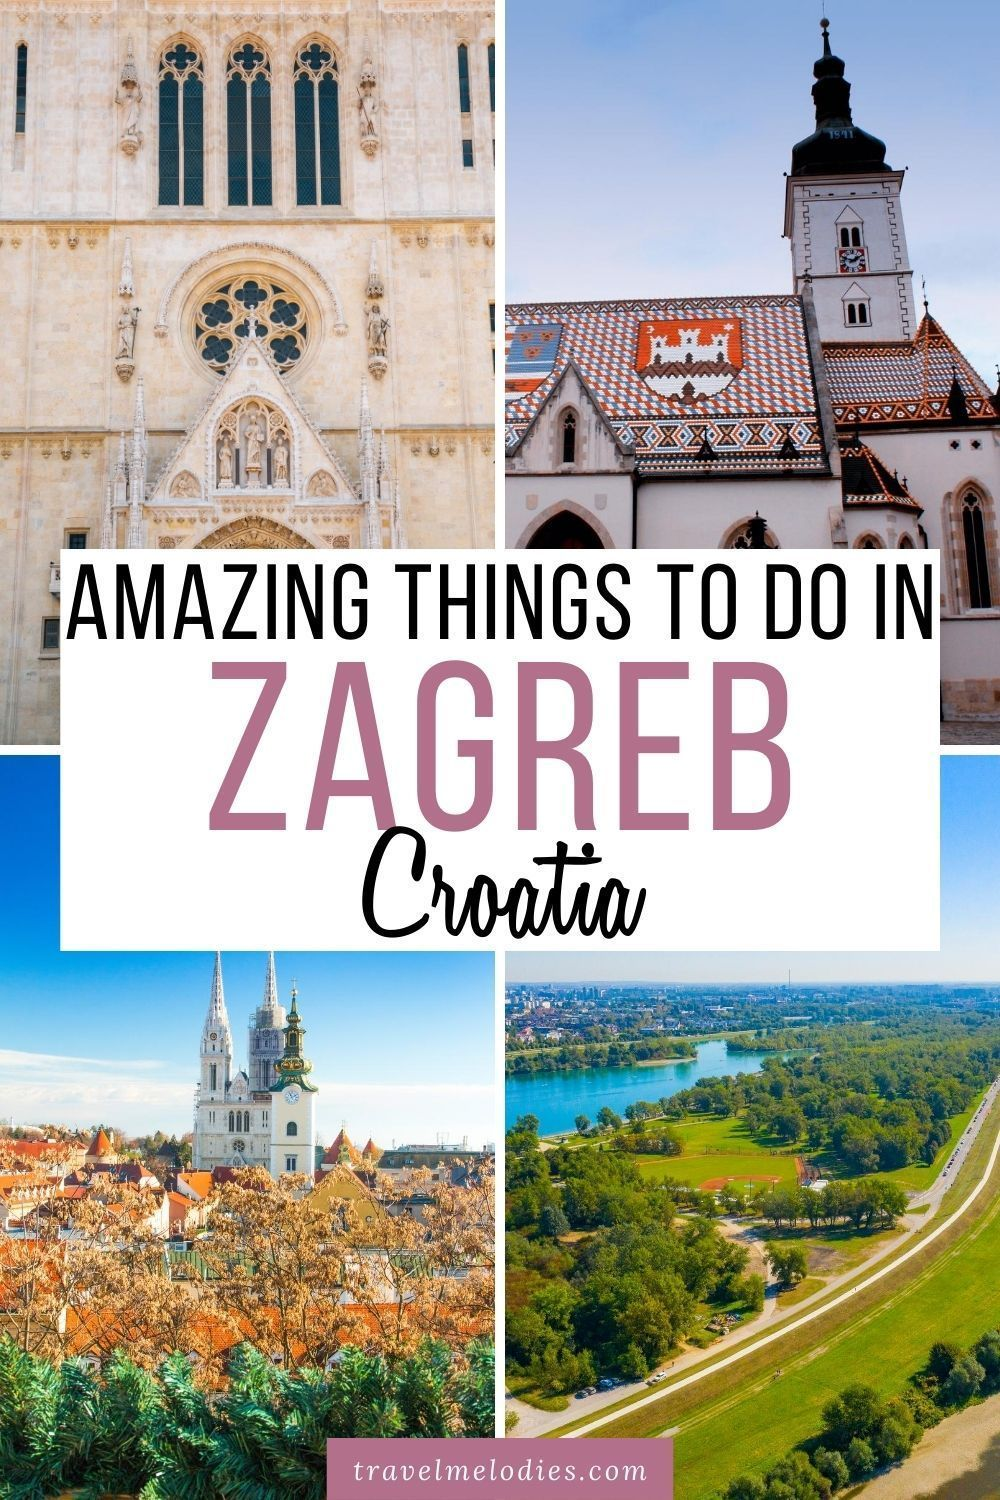 Zagreb A Traveler S Guide To Croatia S Capital City Travel Melodies In 2020 Balkans Travel Europe Trip Itinerary Croatia Travel